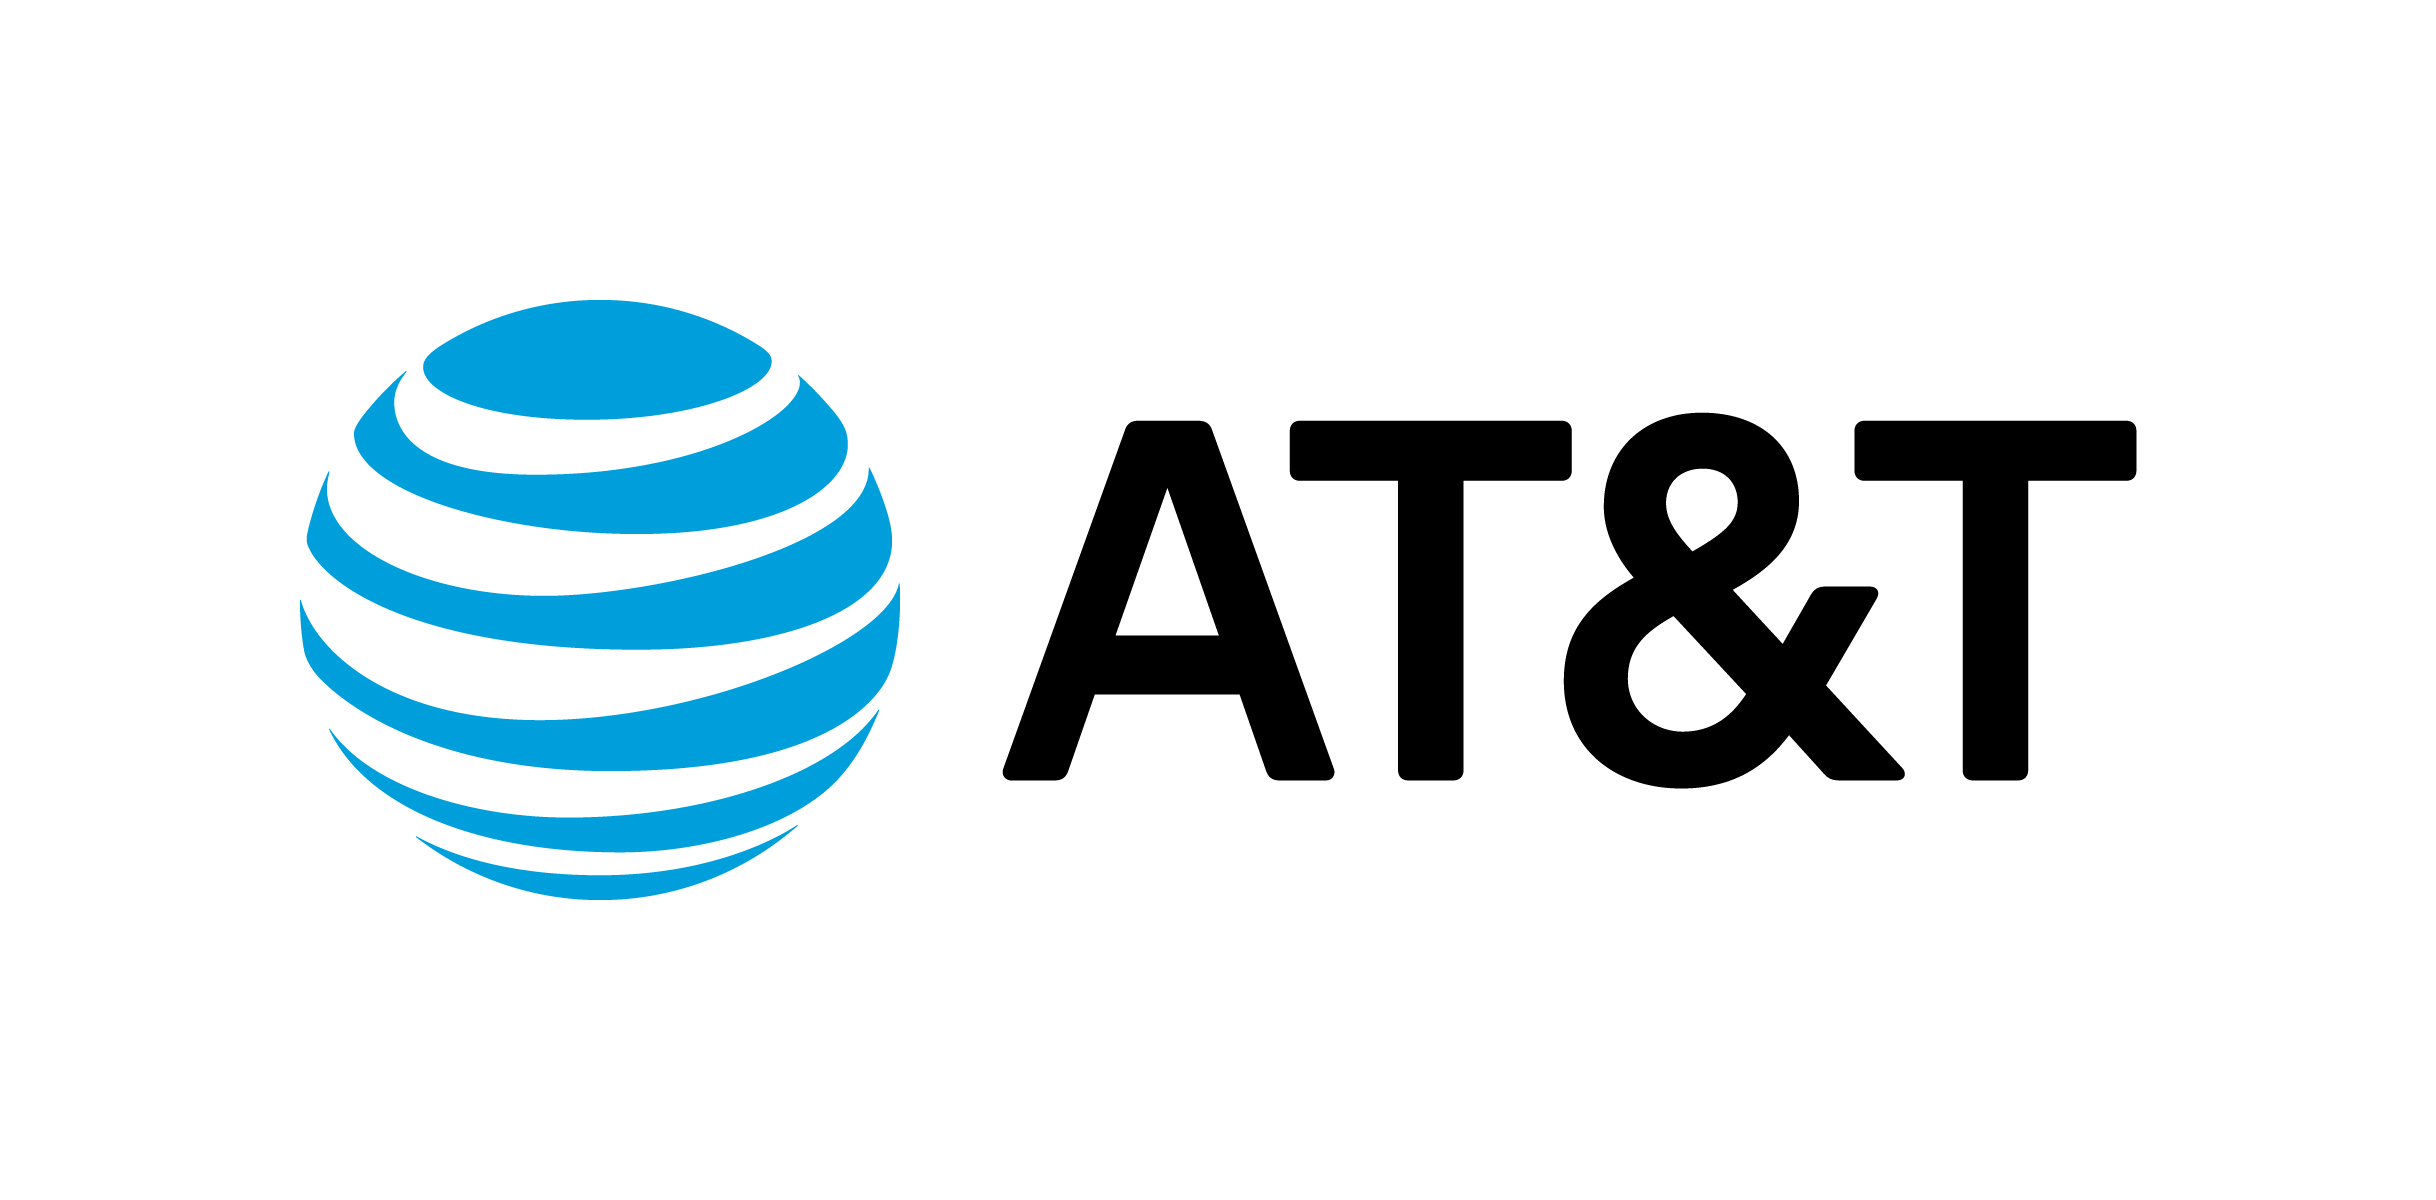 AT&T 2016 logo with letters